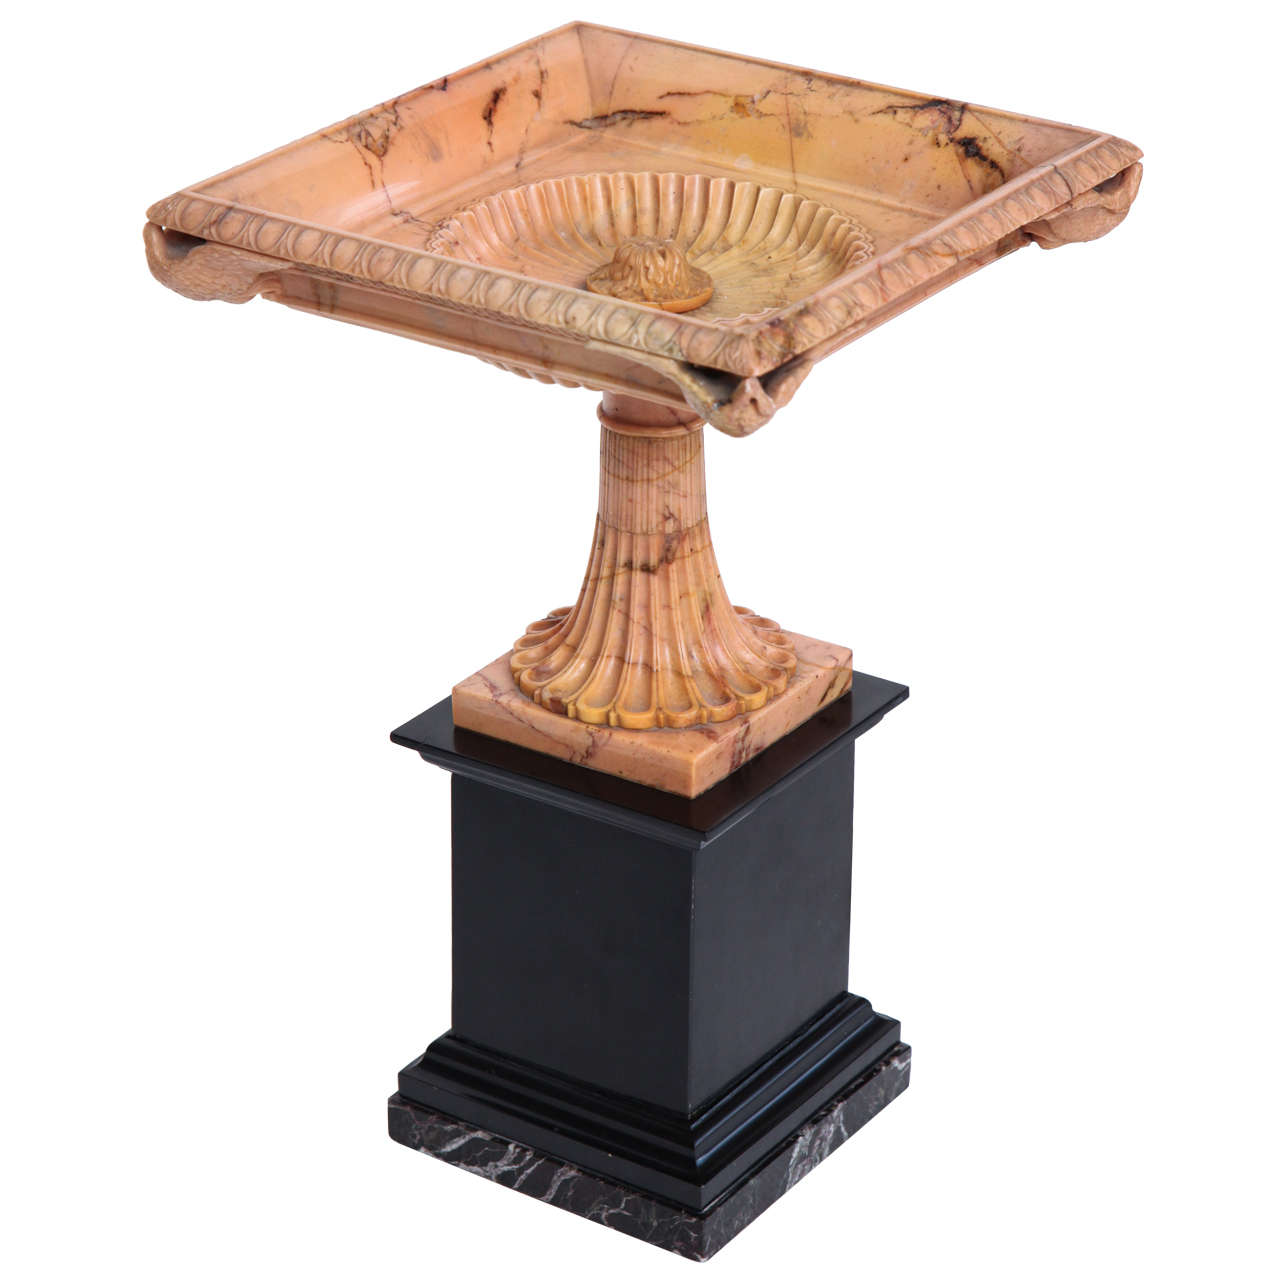 A Superb Sienna Marble 19th Century Tazza on a Marble Plinth For Sale